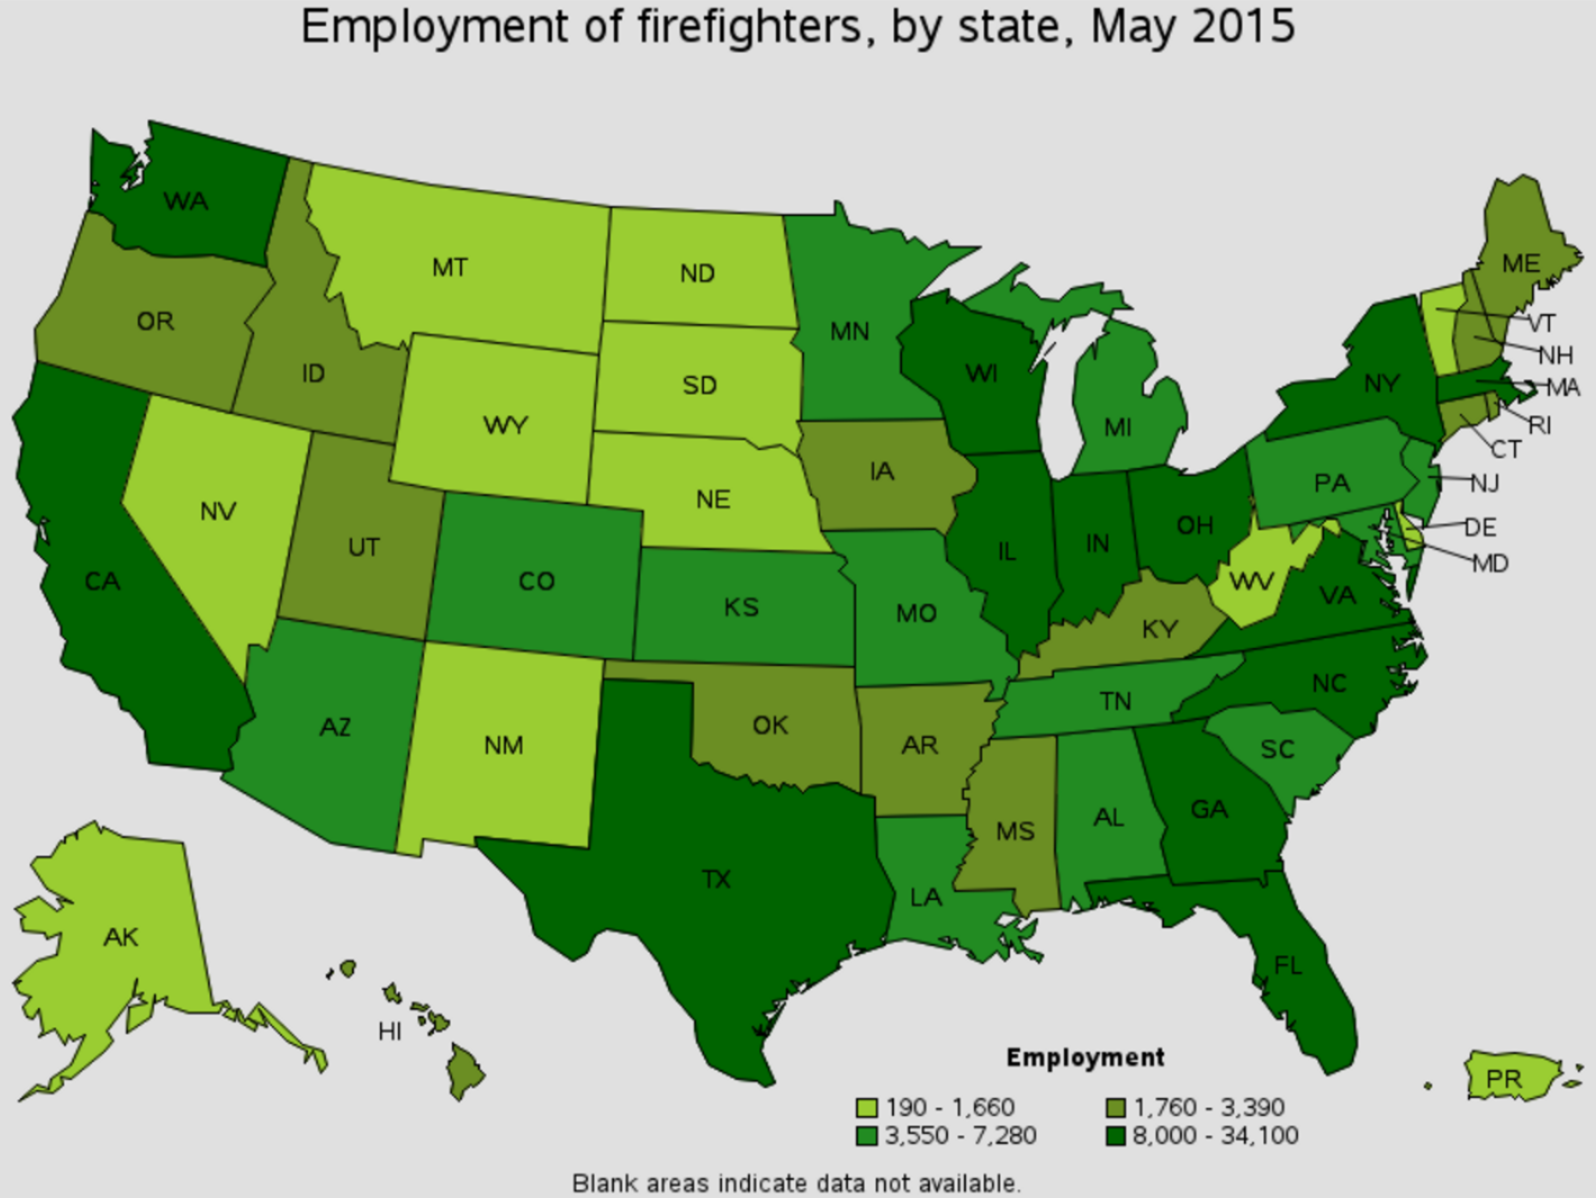 firefighter job outlook by state Warren Michigan